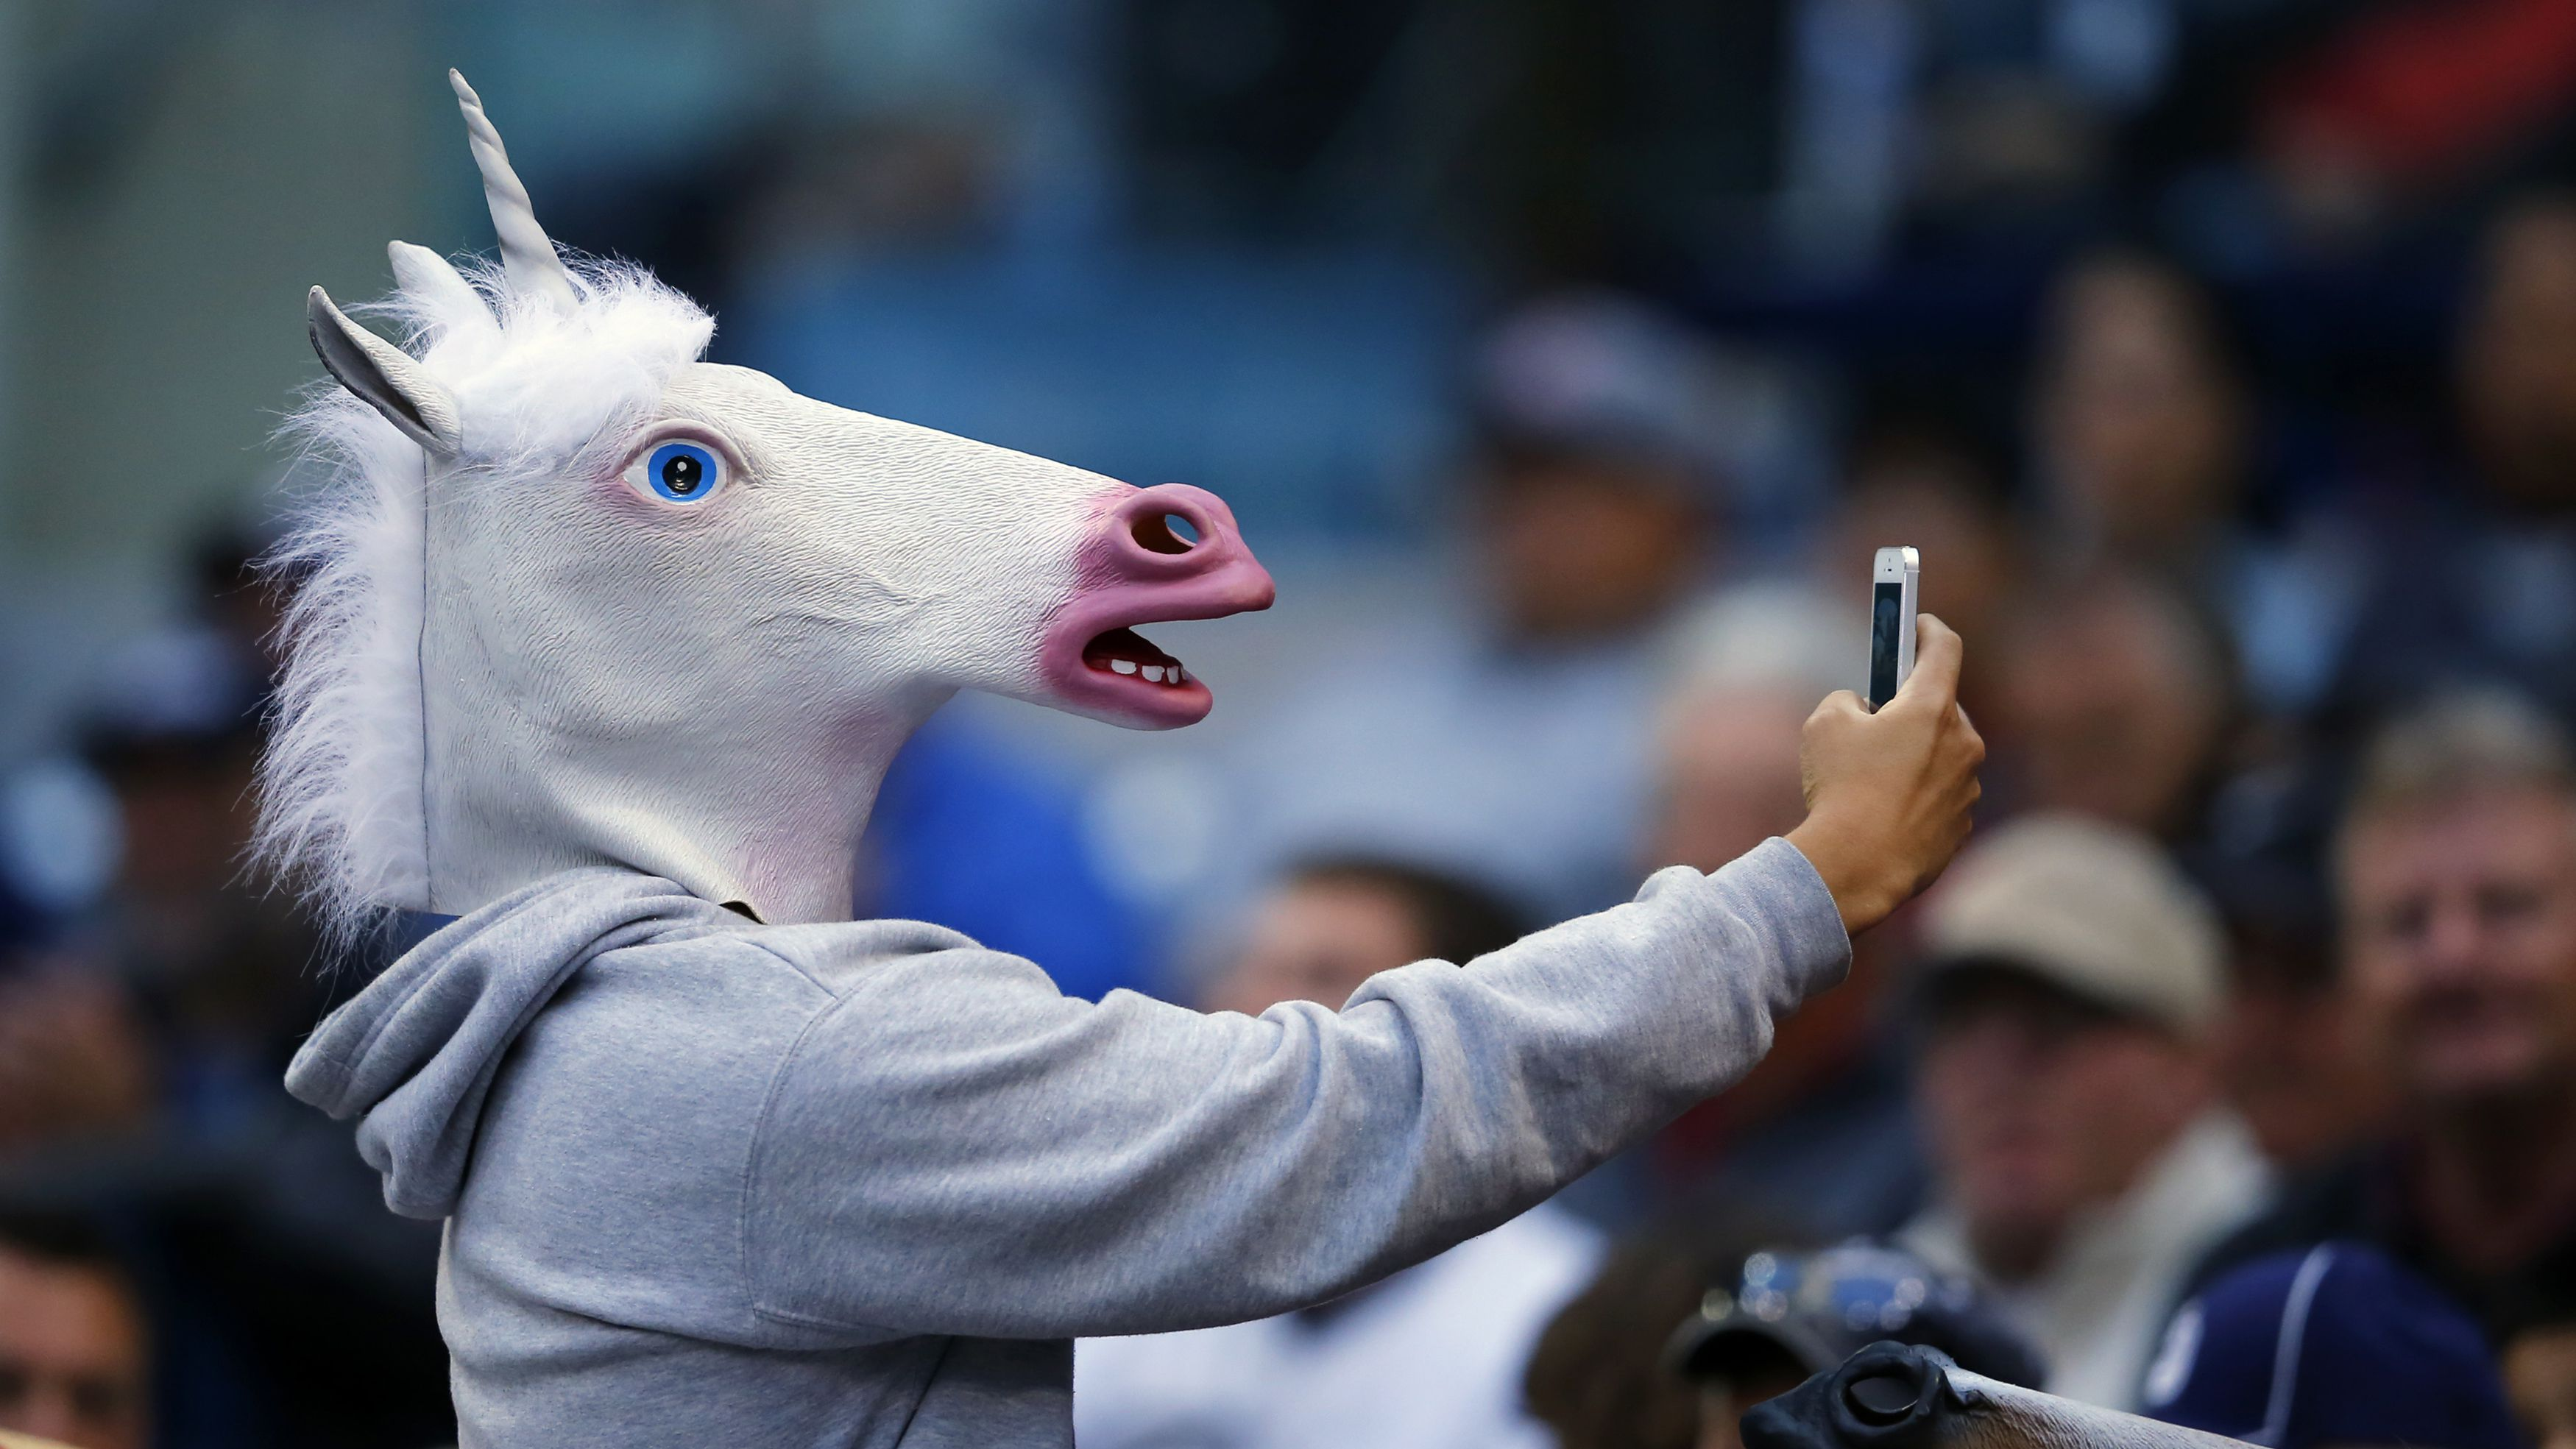 A baseball fan wearing a unicorn mask takes a picture of himself with his phone as he attends the Interleague MLB game between the San Diego Padres and the Toronto Blue Jays in San Diego, California June 2, 2013. REUTERS/Mike Blake (UNITED STATES - Tags: SPORT BASEBALL SOCIETY)